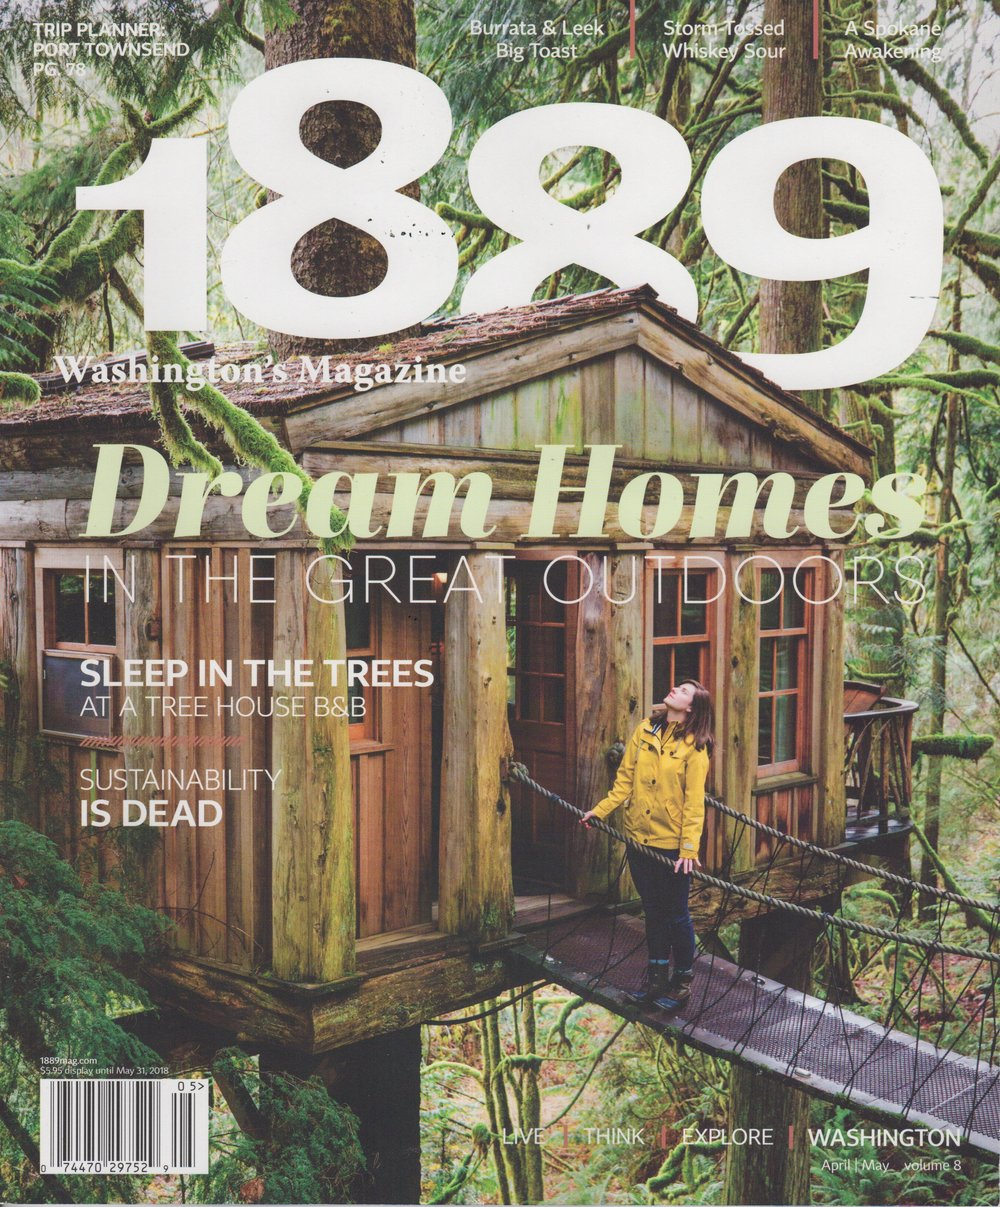 1889 Magazine Cover.jpeg